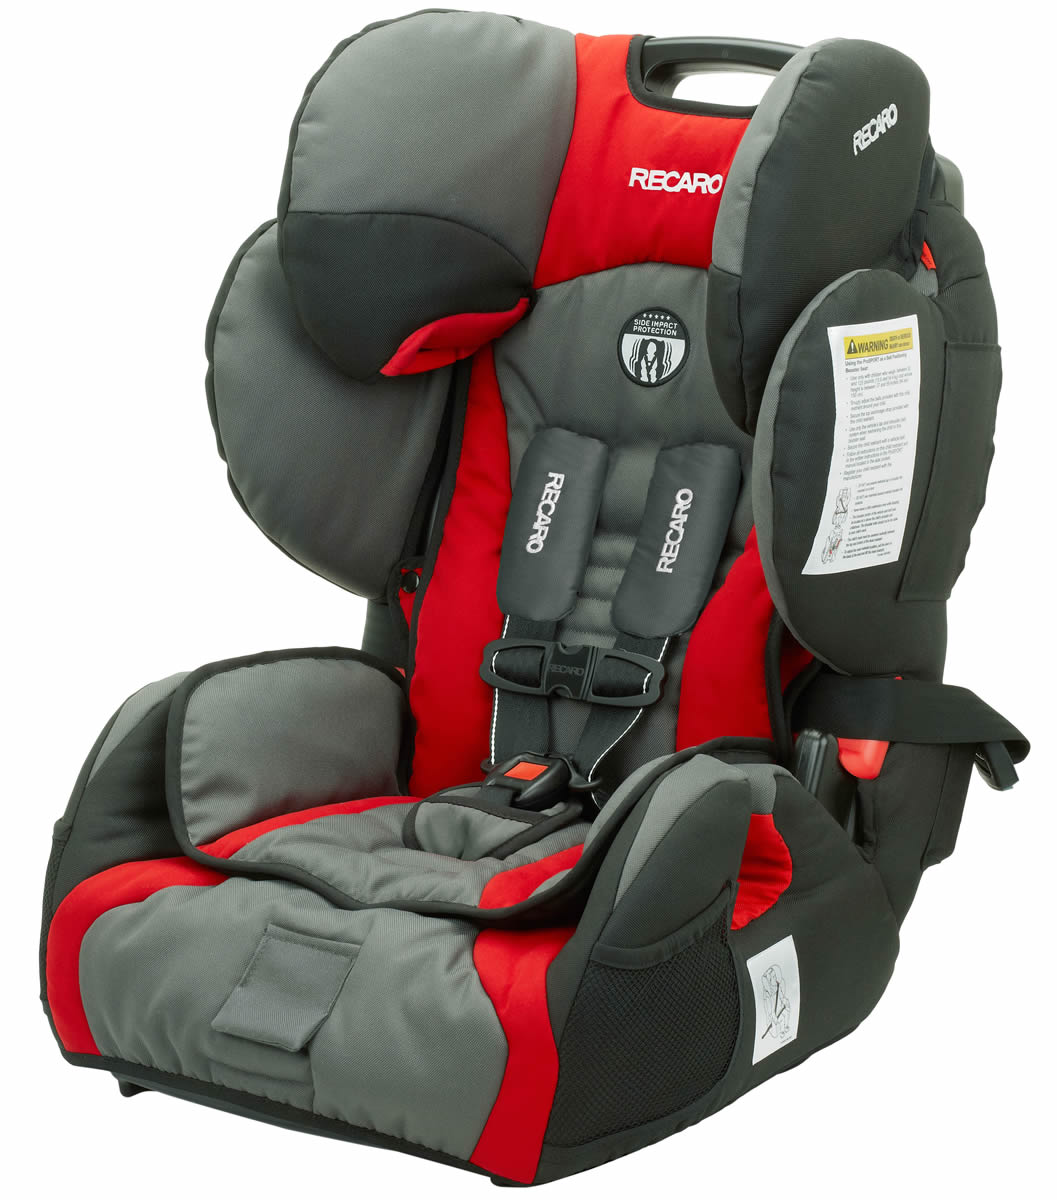 Ideal Recaro Performance Sport Combination Harness To Booster Car Seat Blaze 7 Recaro Performance Sport Booster Mode Recaro Performance Sport Vibe baby Recaro Performance Sport